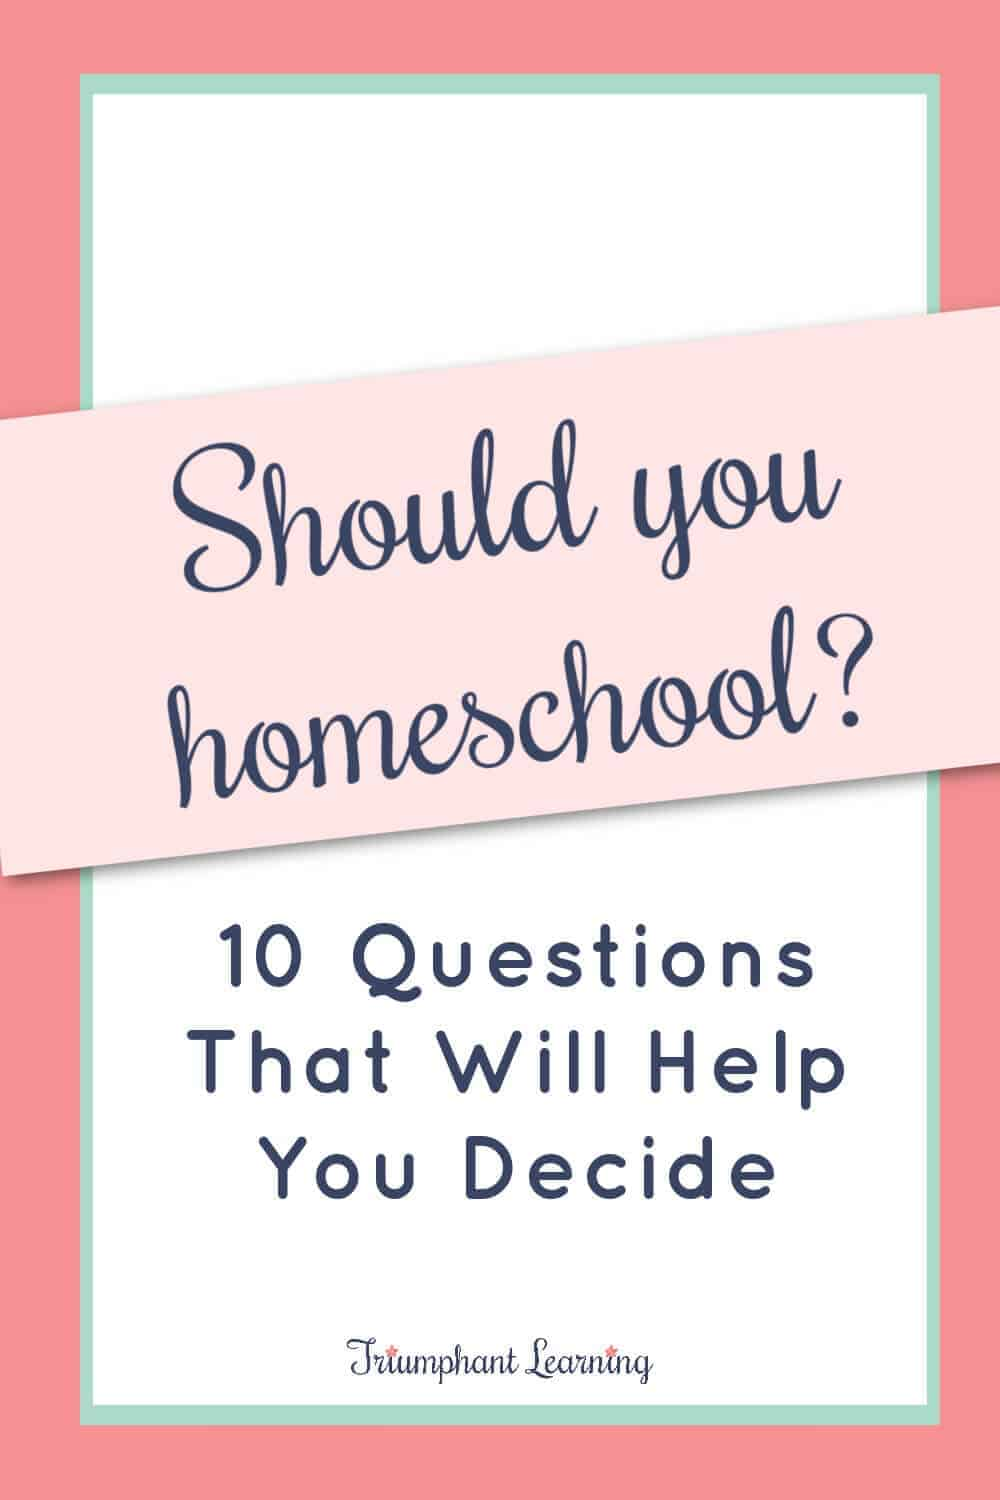 """Should I homeschool?"" is a question many parents struggle to answer. There's no one right answer, but these 10 questions will help you decide if homeschooling would be a good fit for your family. via @TriLearning"